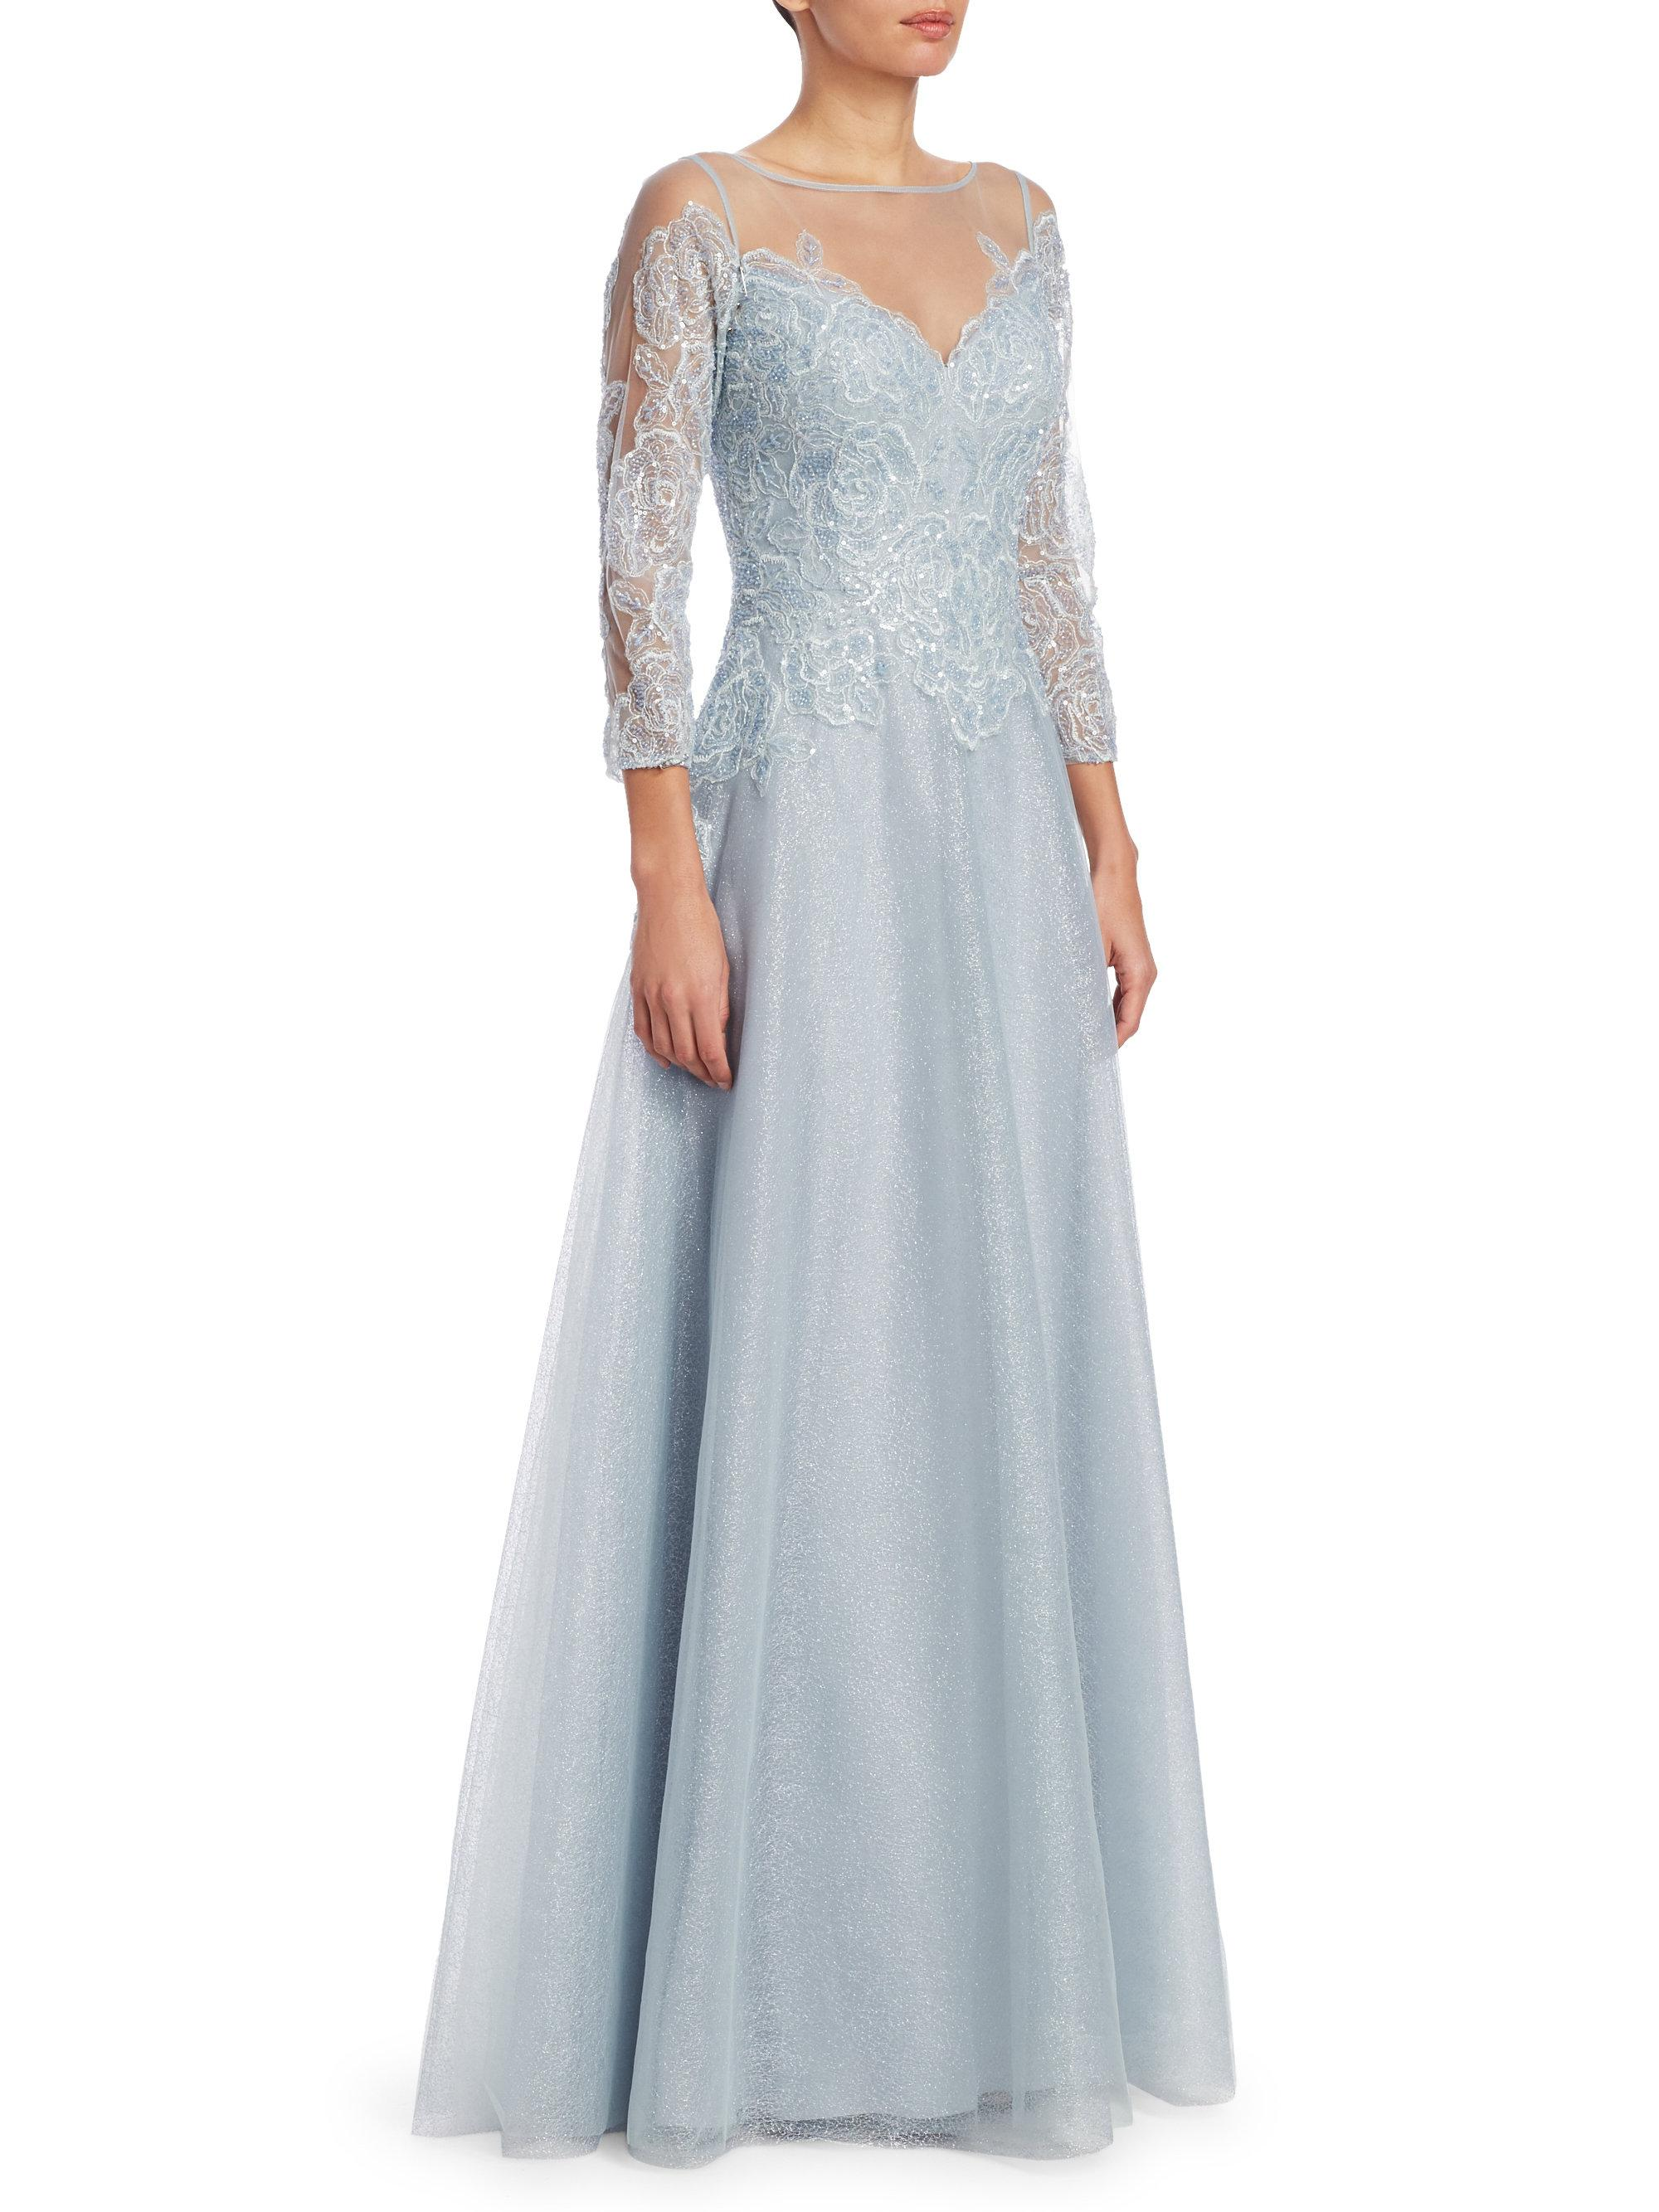 Famous Saks Mother Of The Bride Dress Images - All Wedding Dresses ...